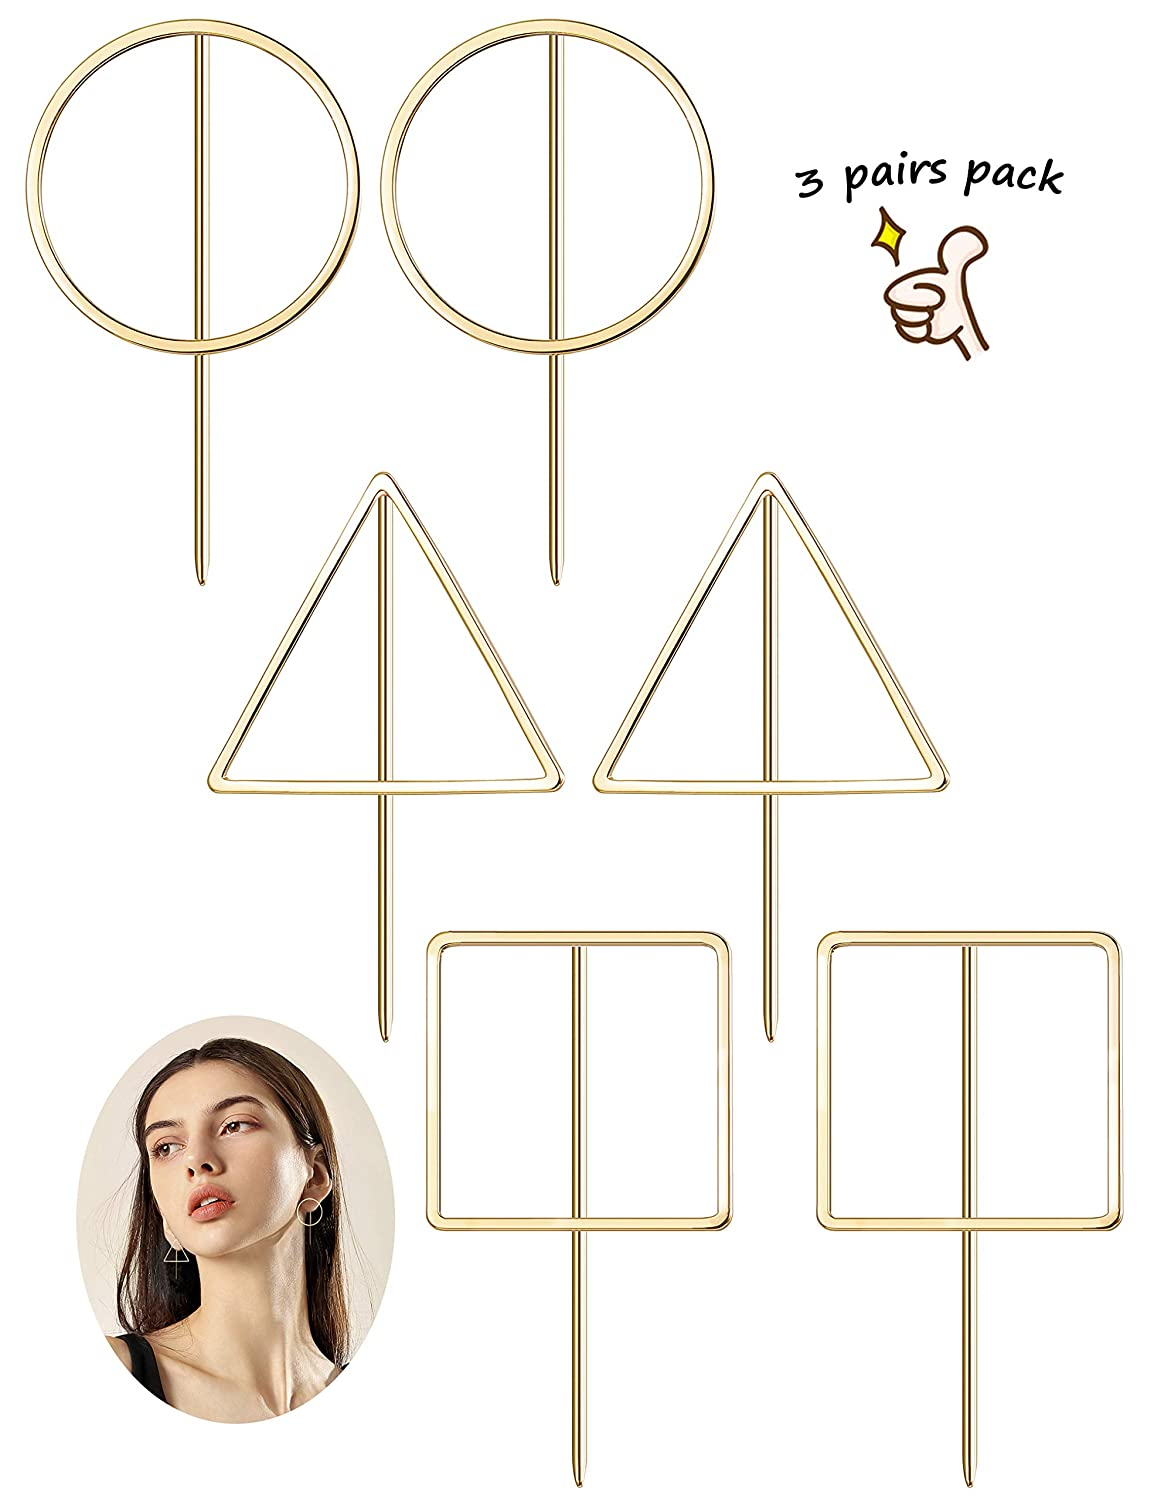 Finrezio 3 Pairs Geometric Earrings for Women Girls Gold Plated Simple Round/Square/Triangle Earrings set B07FTDYVBL_US